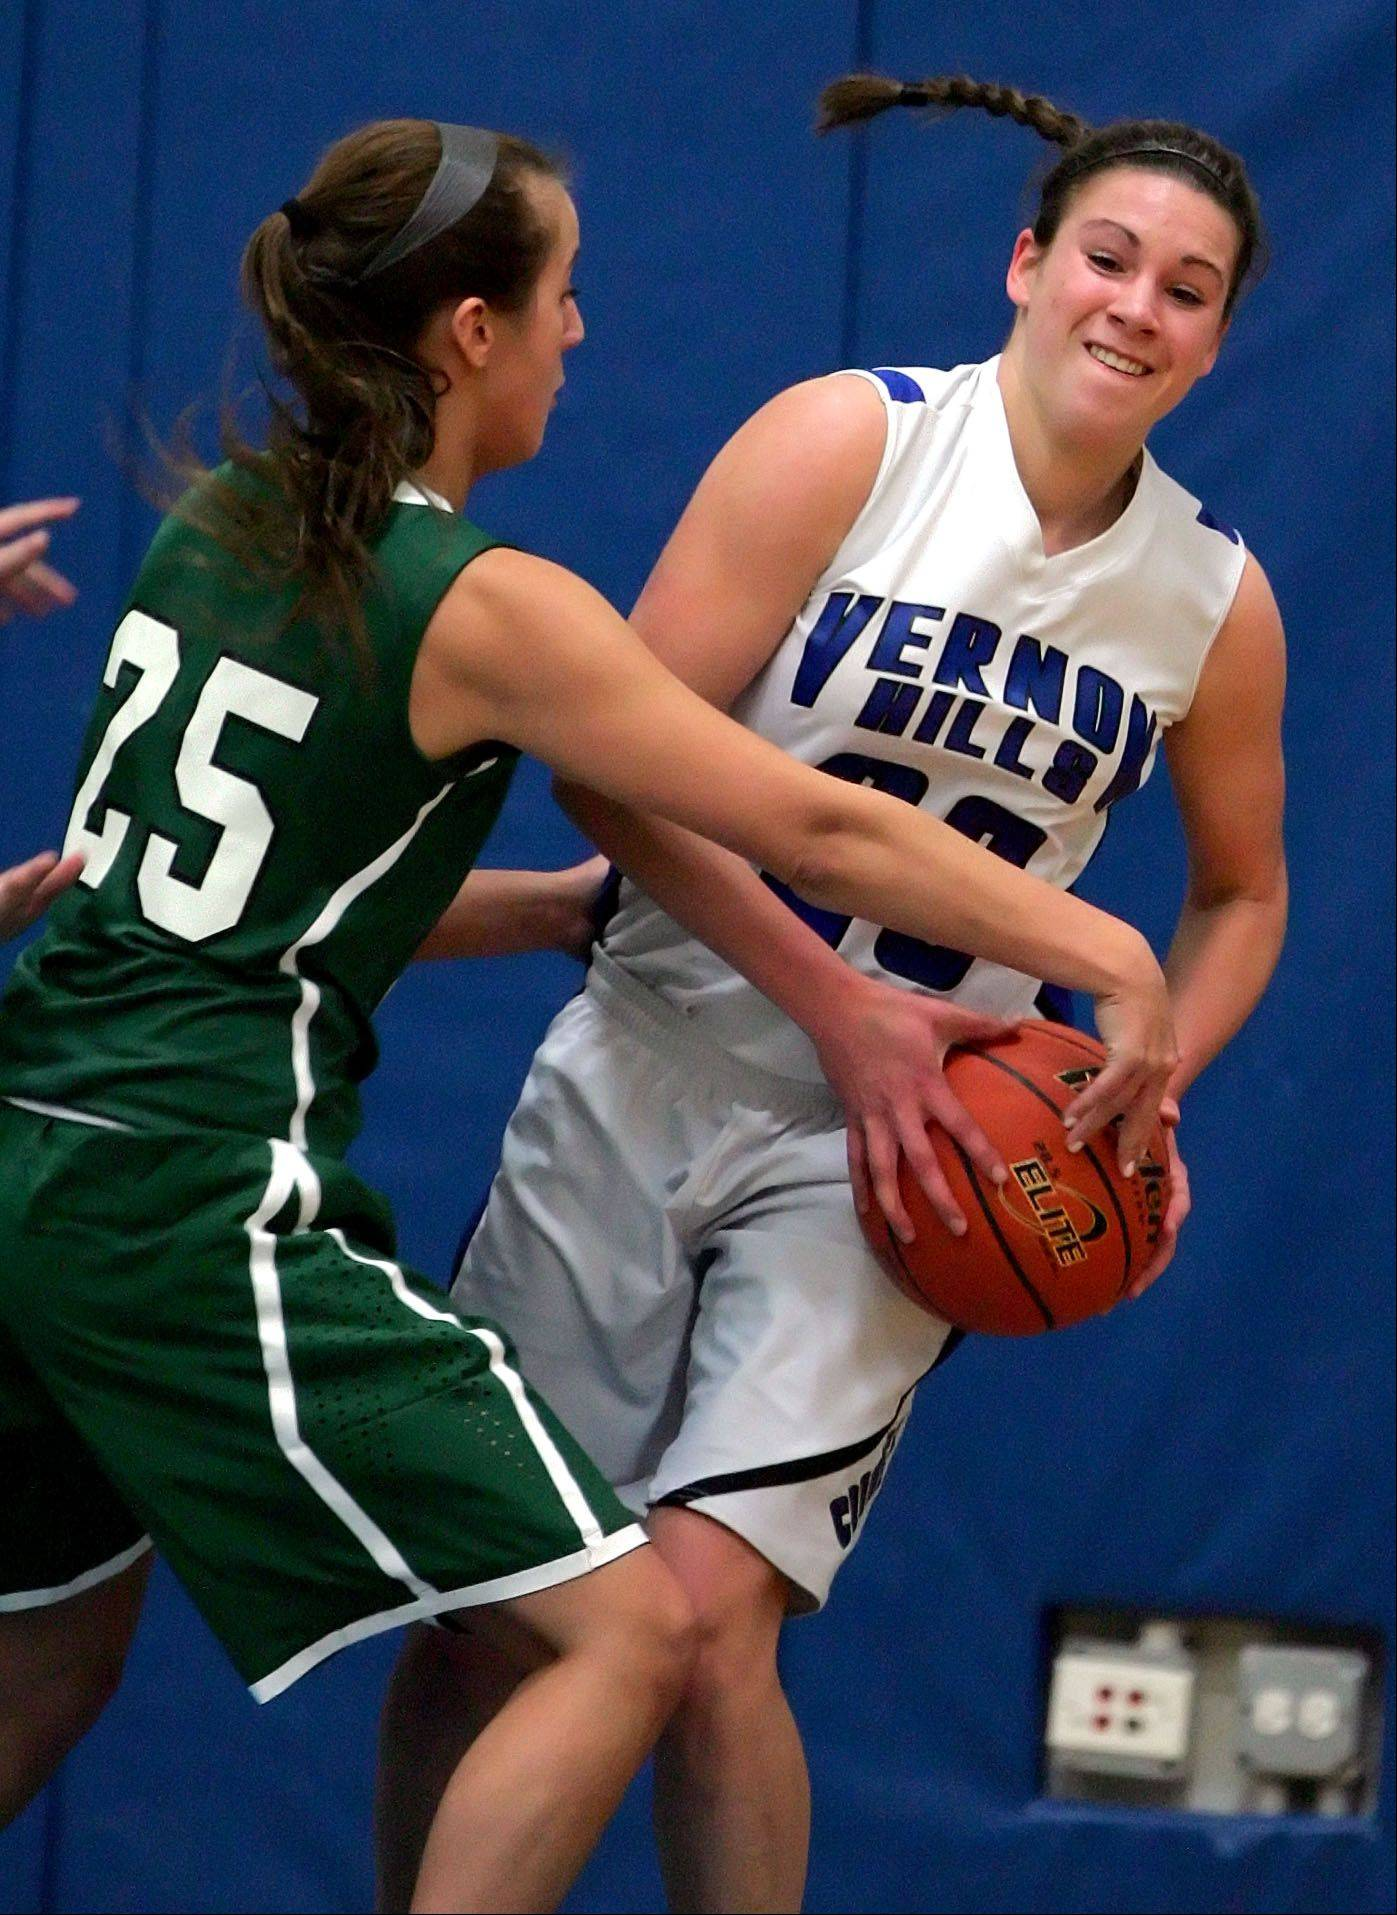 Vernon Hills� Brie Bahlmann, right, looks to pass as Grayslake Central�s Taylor Peterson defends Tuesday night at Vernon Hills High School.